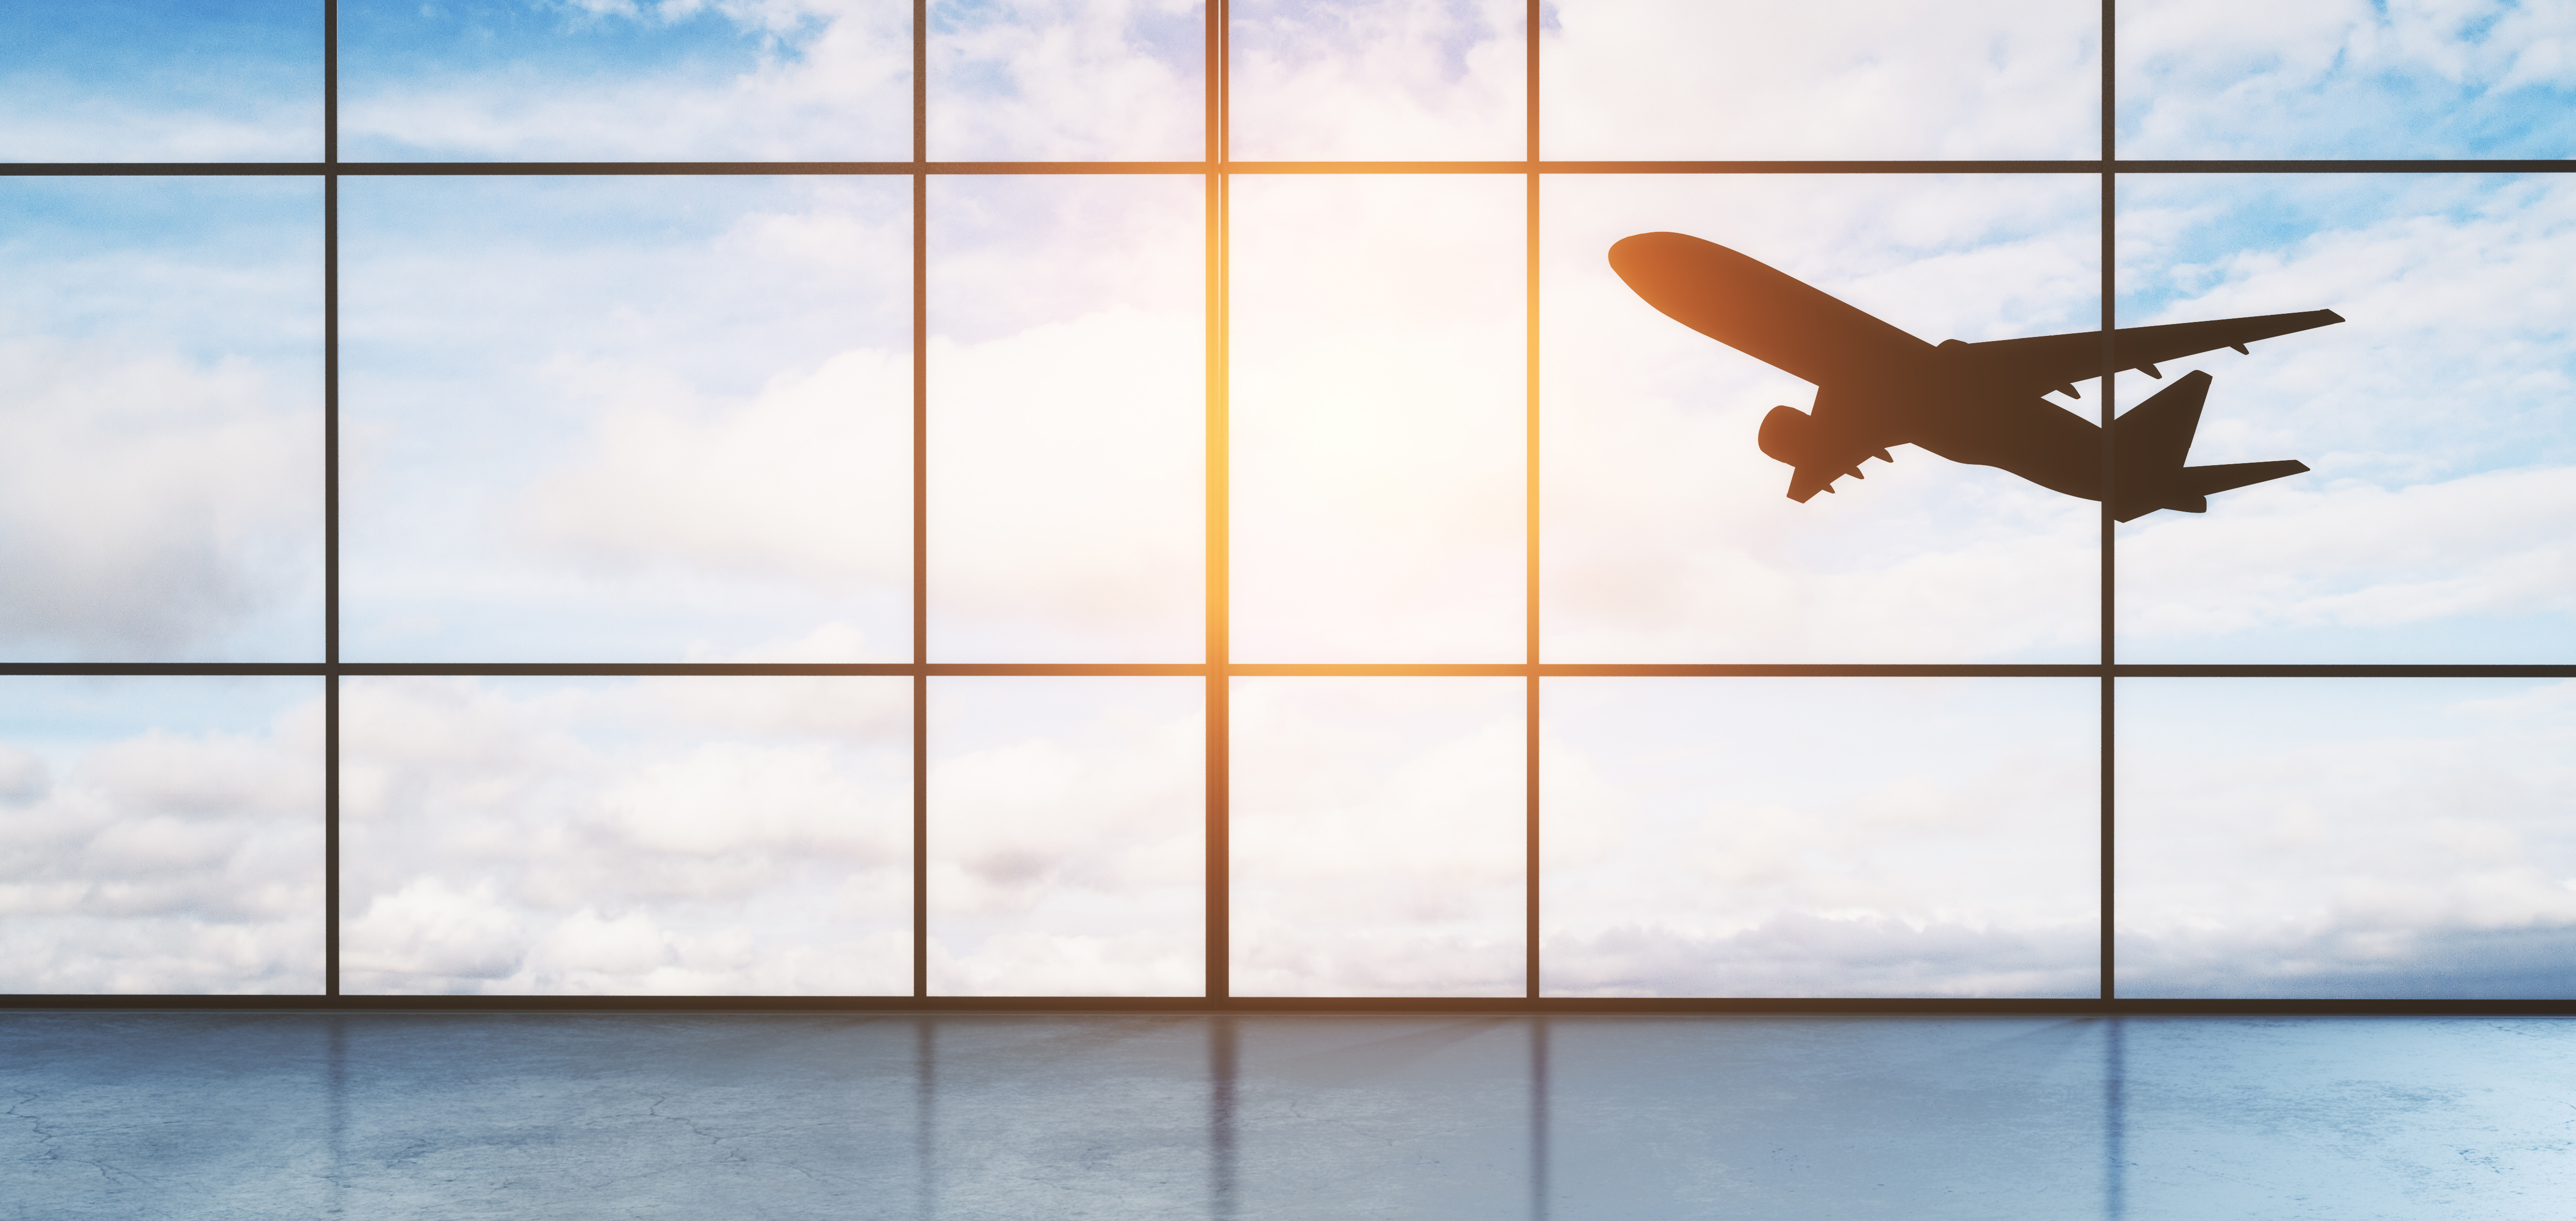 As COVID-19 puts the brakes on travel, construction management firms in the aviation industry face changing priorities as they build airport cities. Planning is key to maximizing recovery.